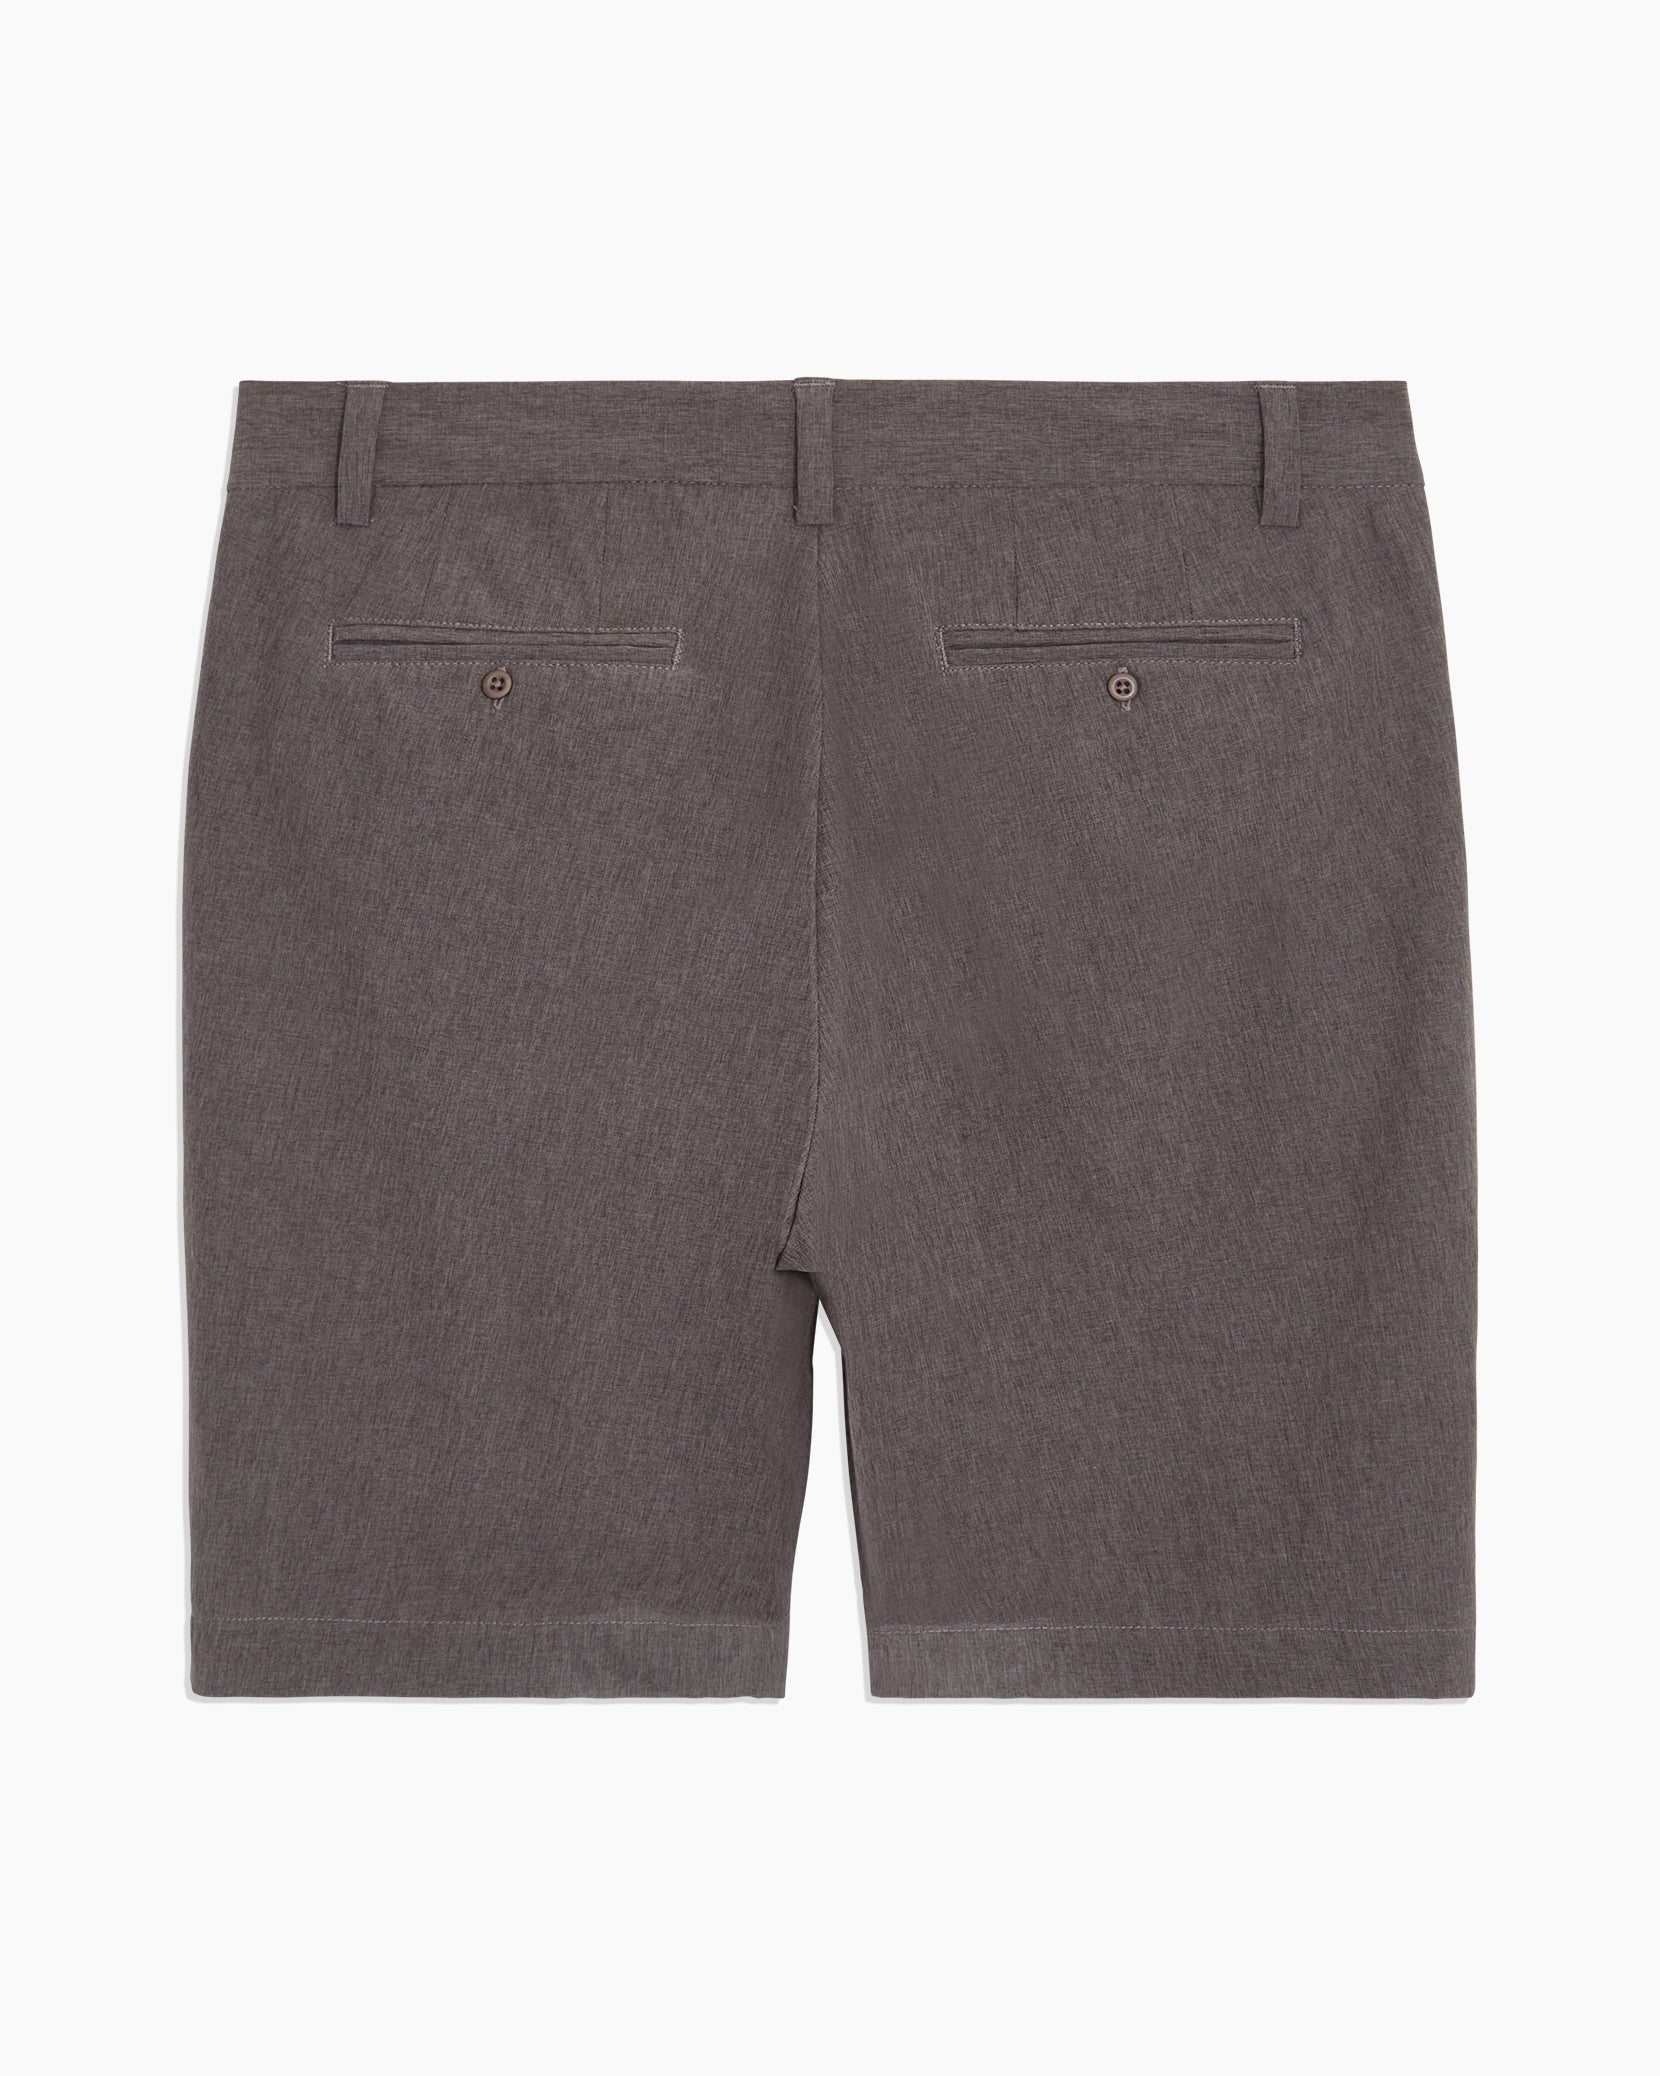 Versatility Stretch Chambray Short in Charcoal - 13 - Onia